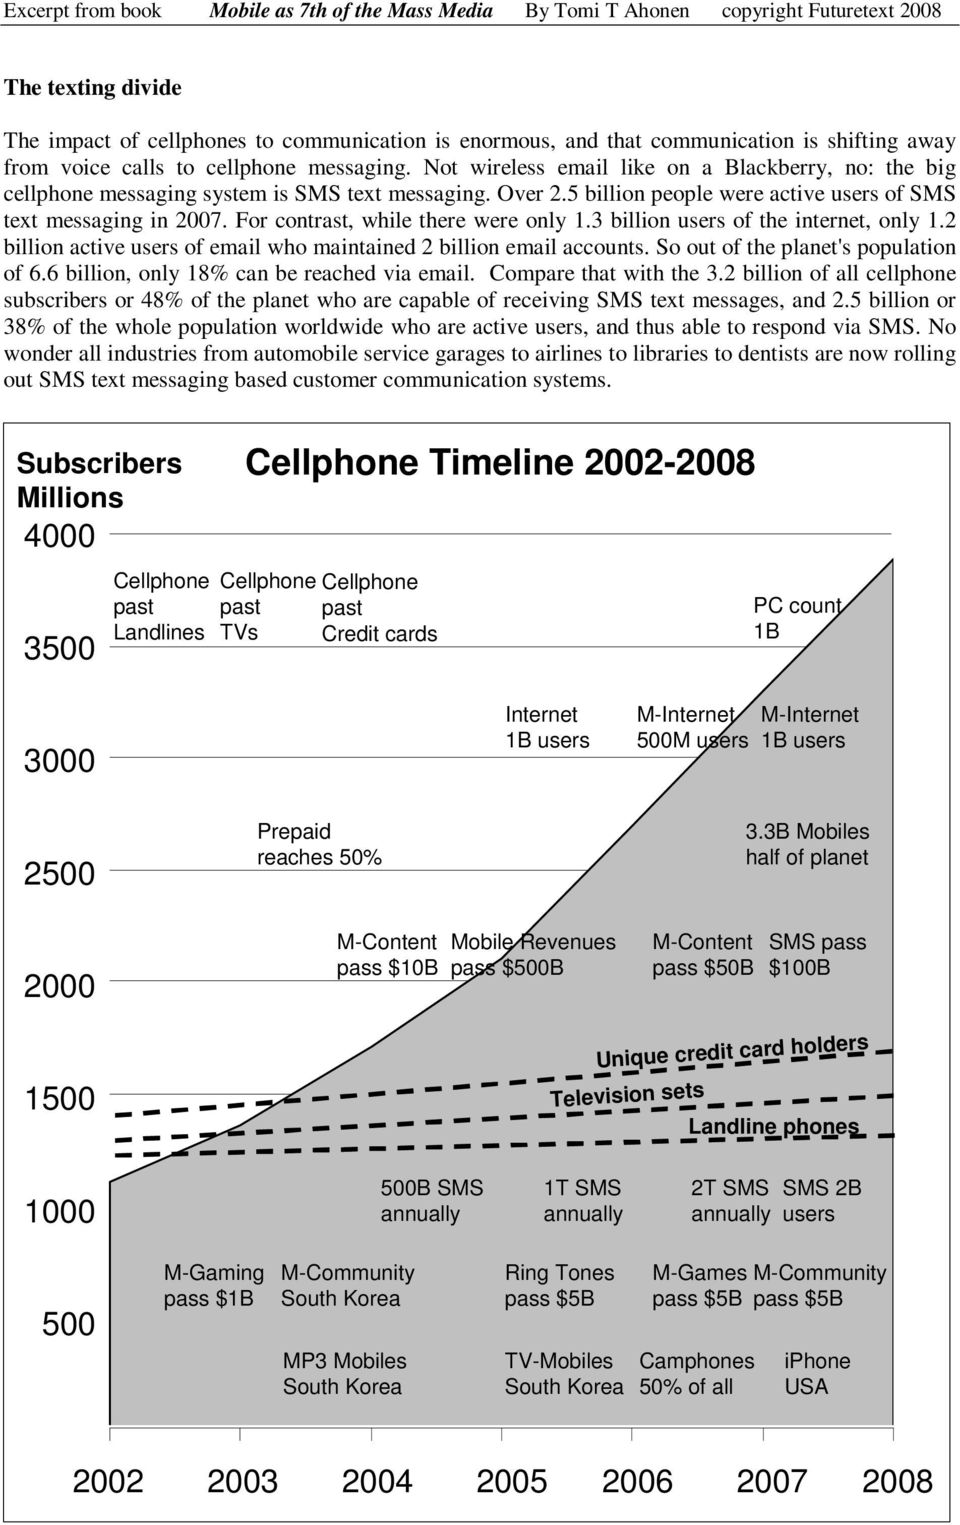 For contrast, while there were only 1.3 billion users of the internet, only 1.2 billion active users of email who maintained 2 billion email accounts. So out of the planet's population of 6.